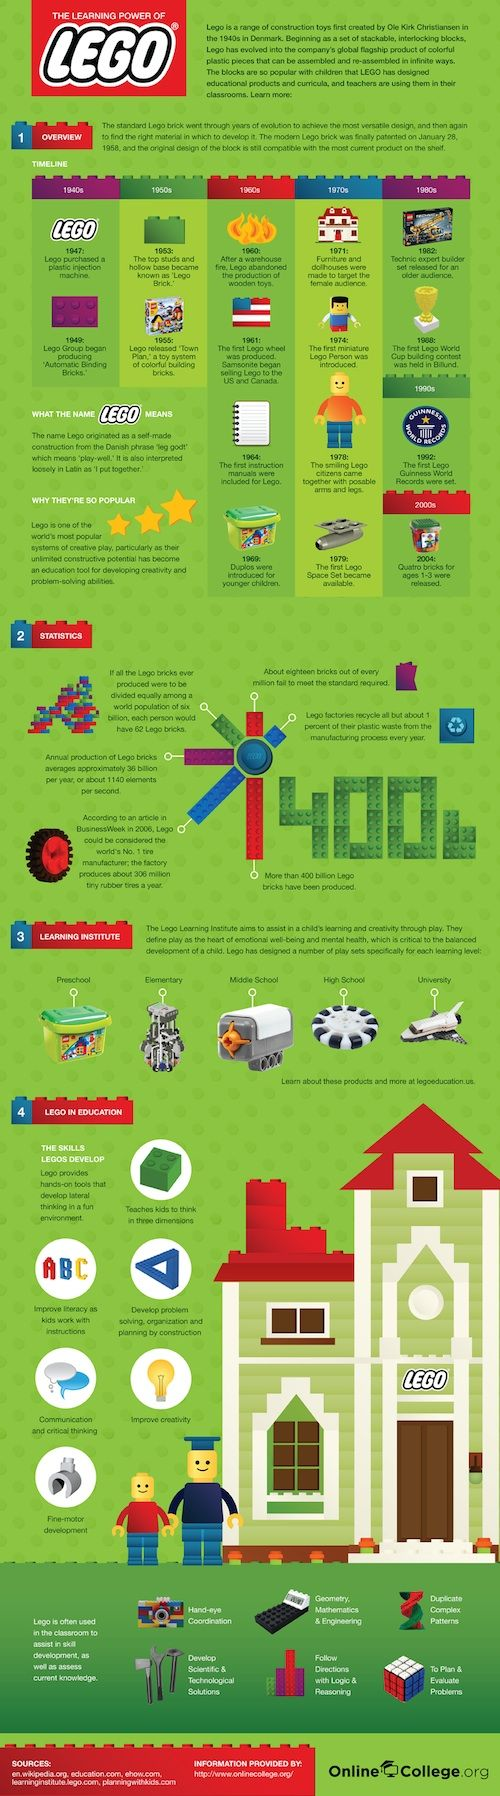 Infographic: The Learning Power of Lego